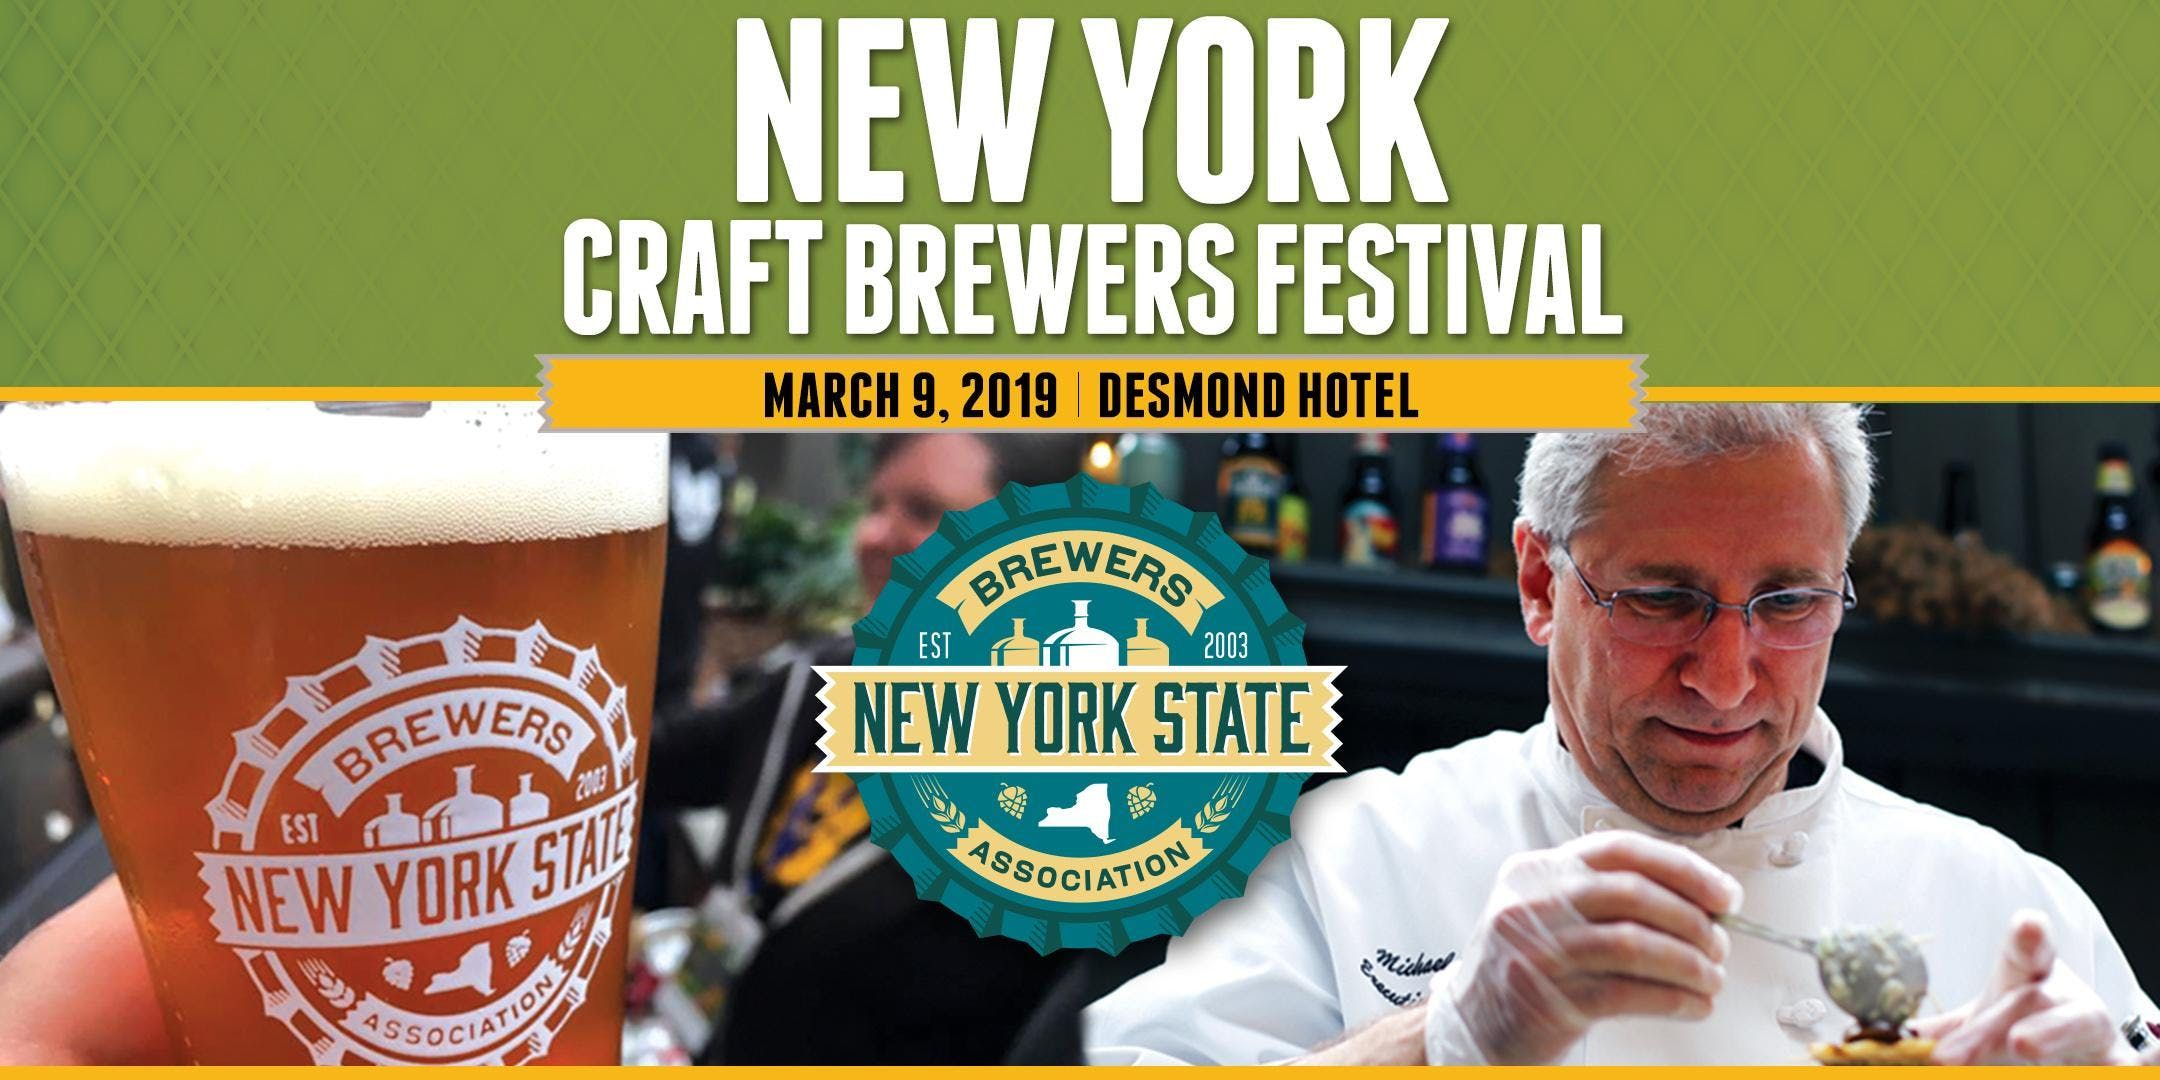 New York Craft Brewers Festival - VIP Session